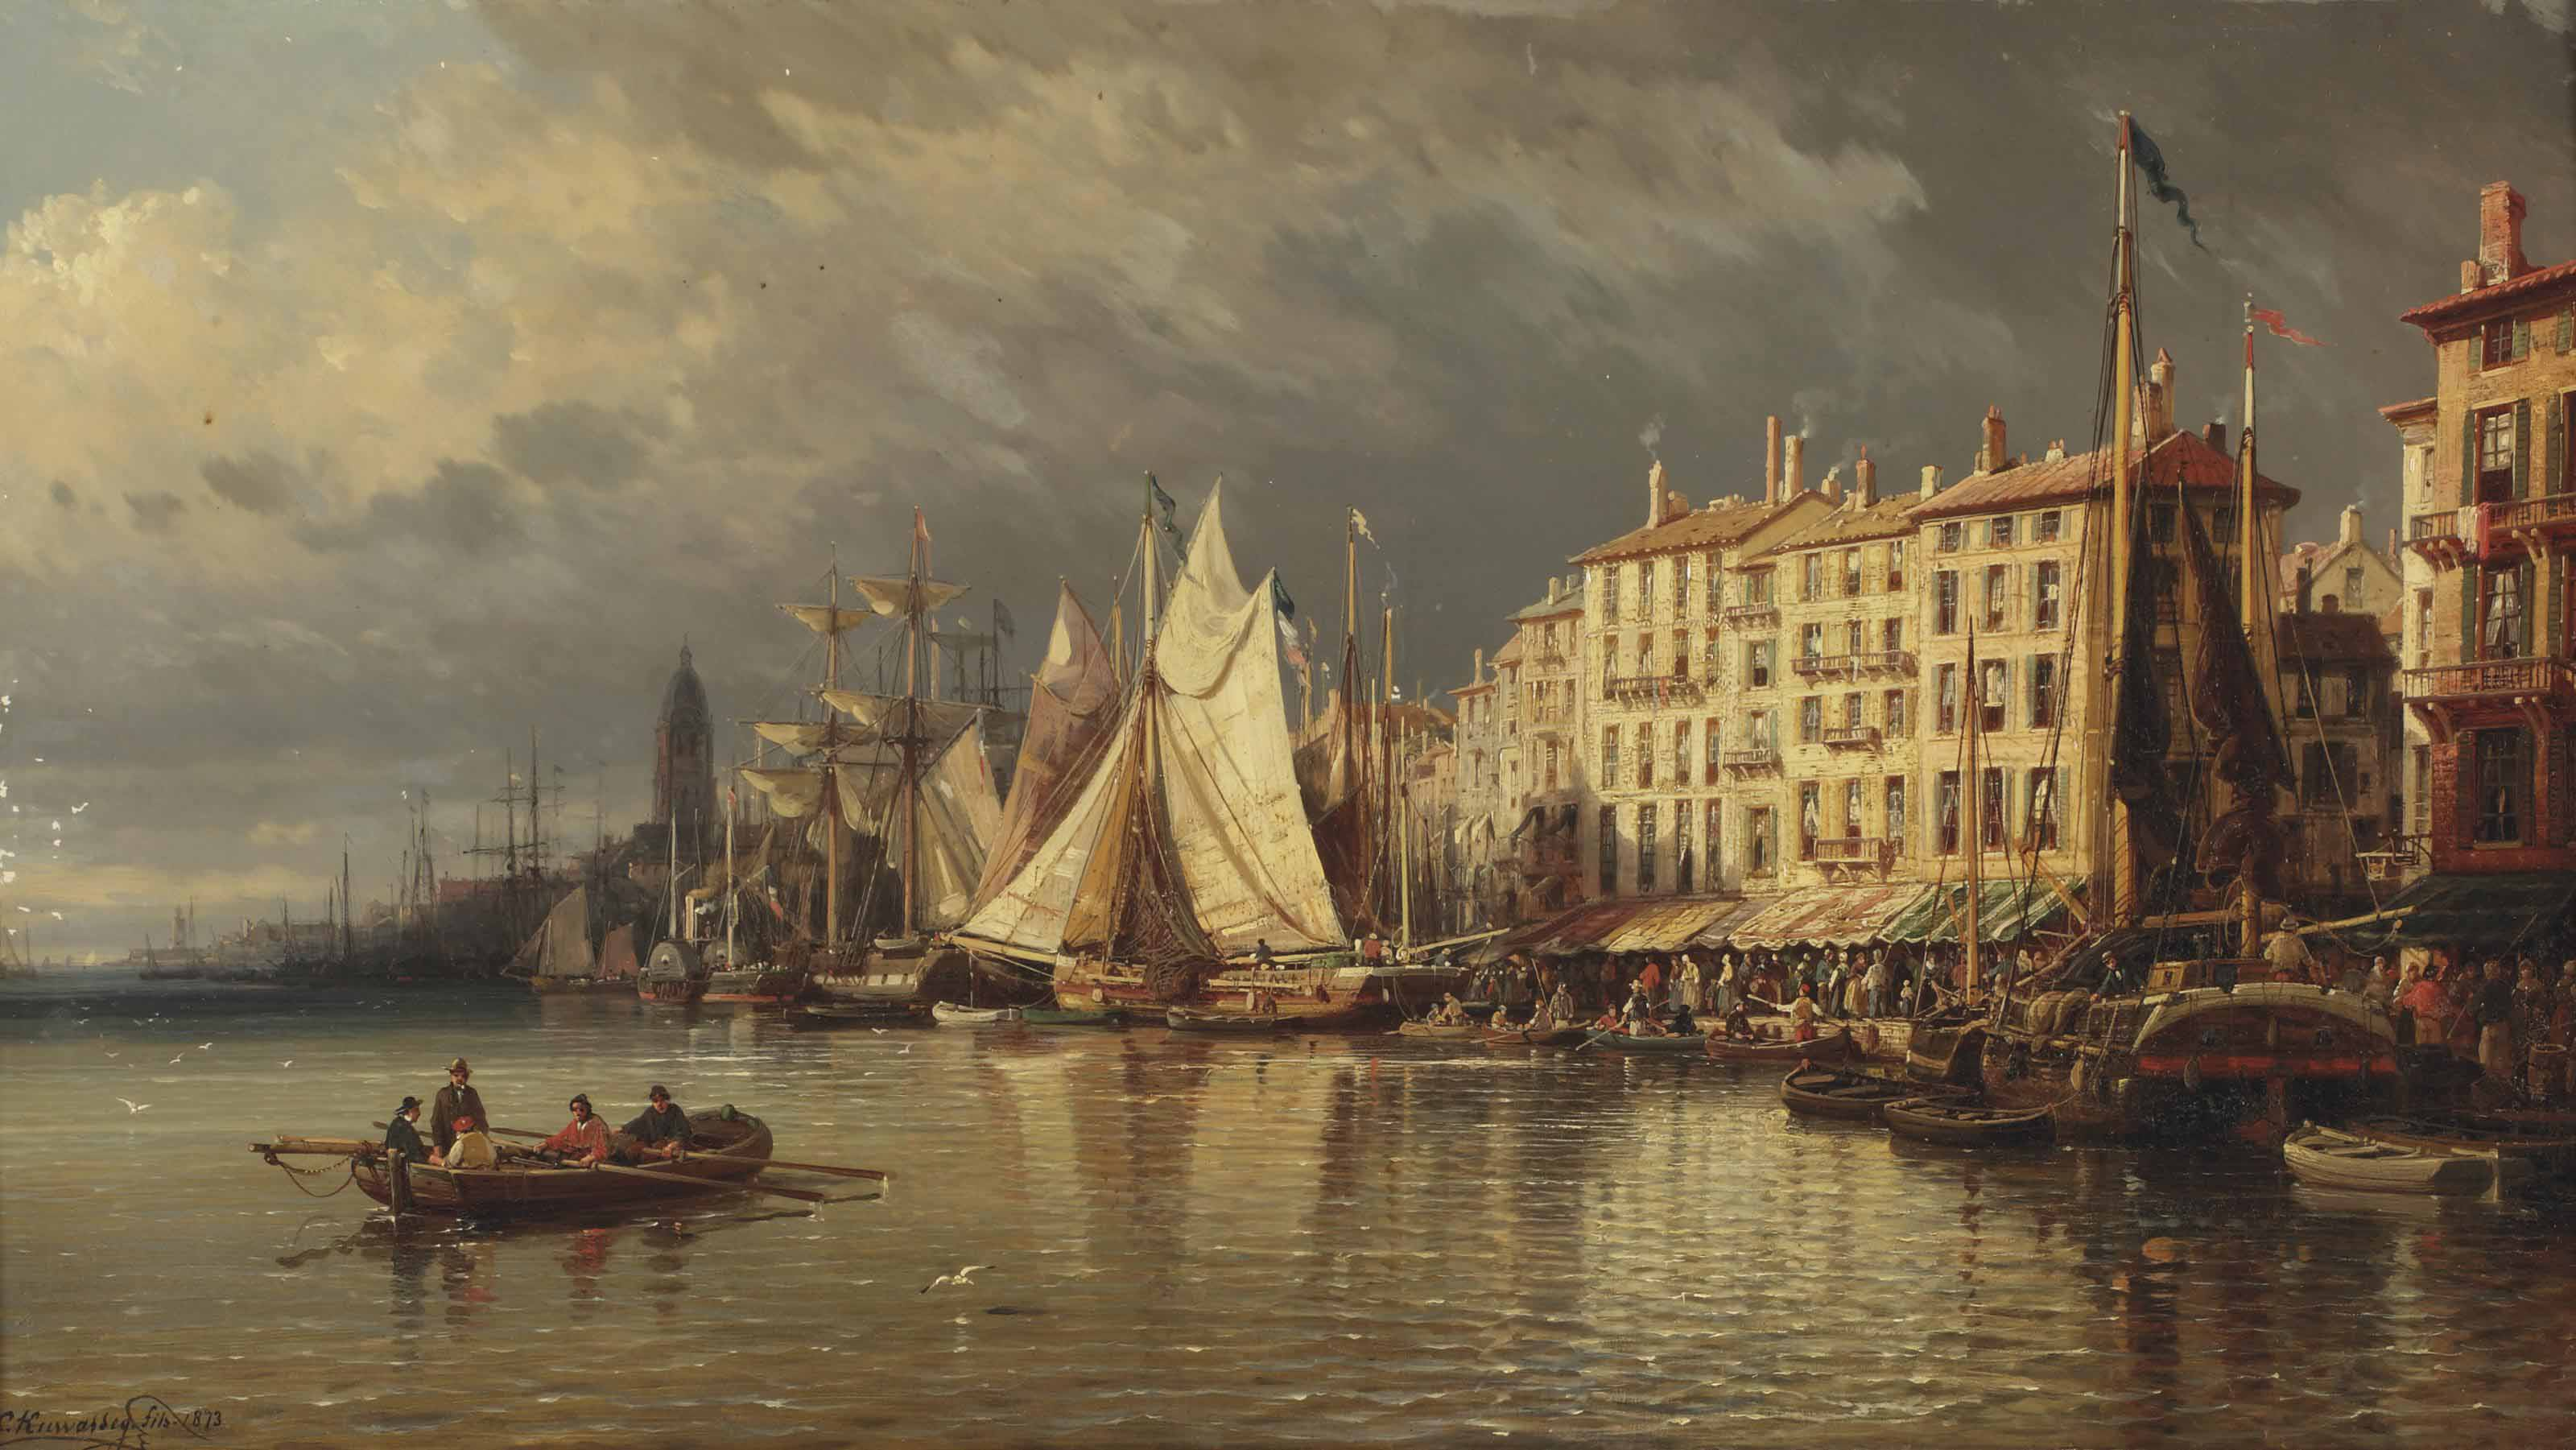 A view of a Mediterranean harbour